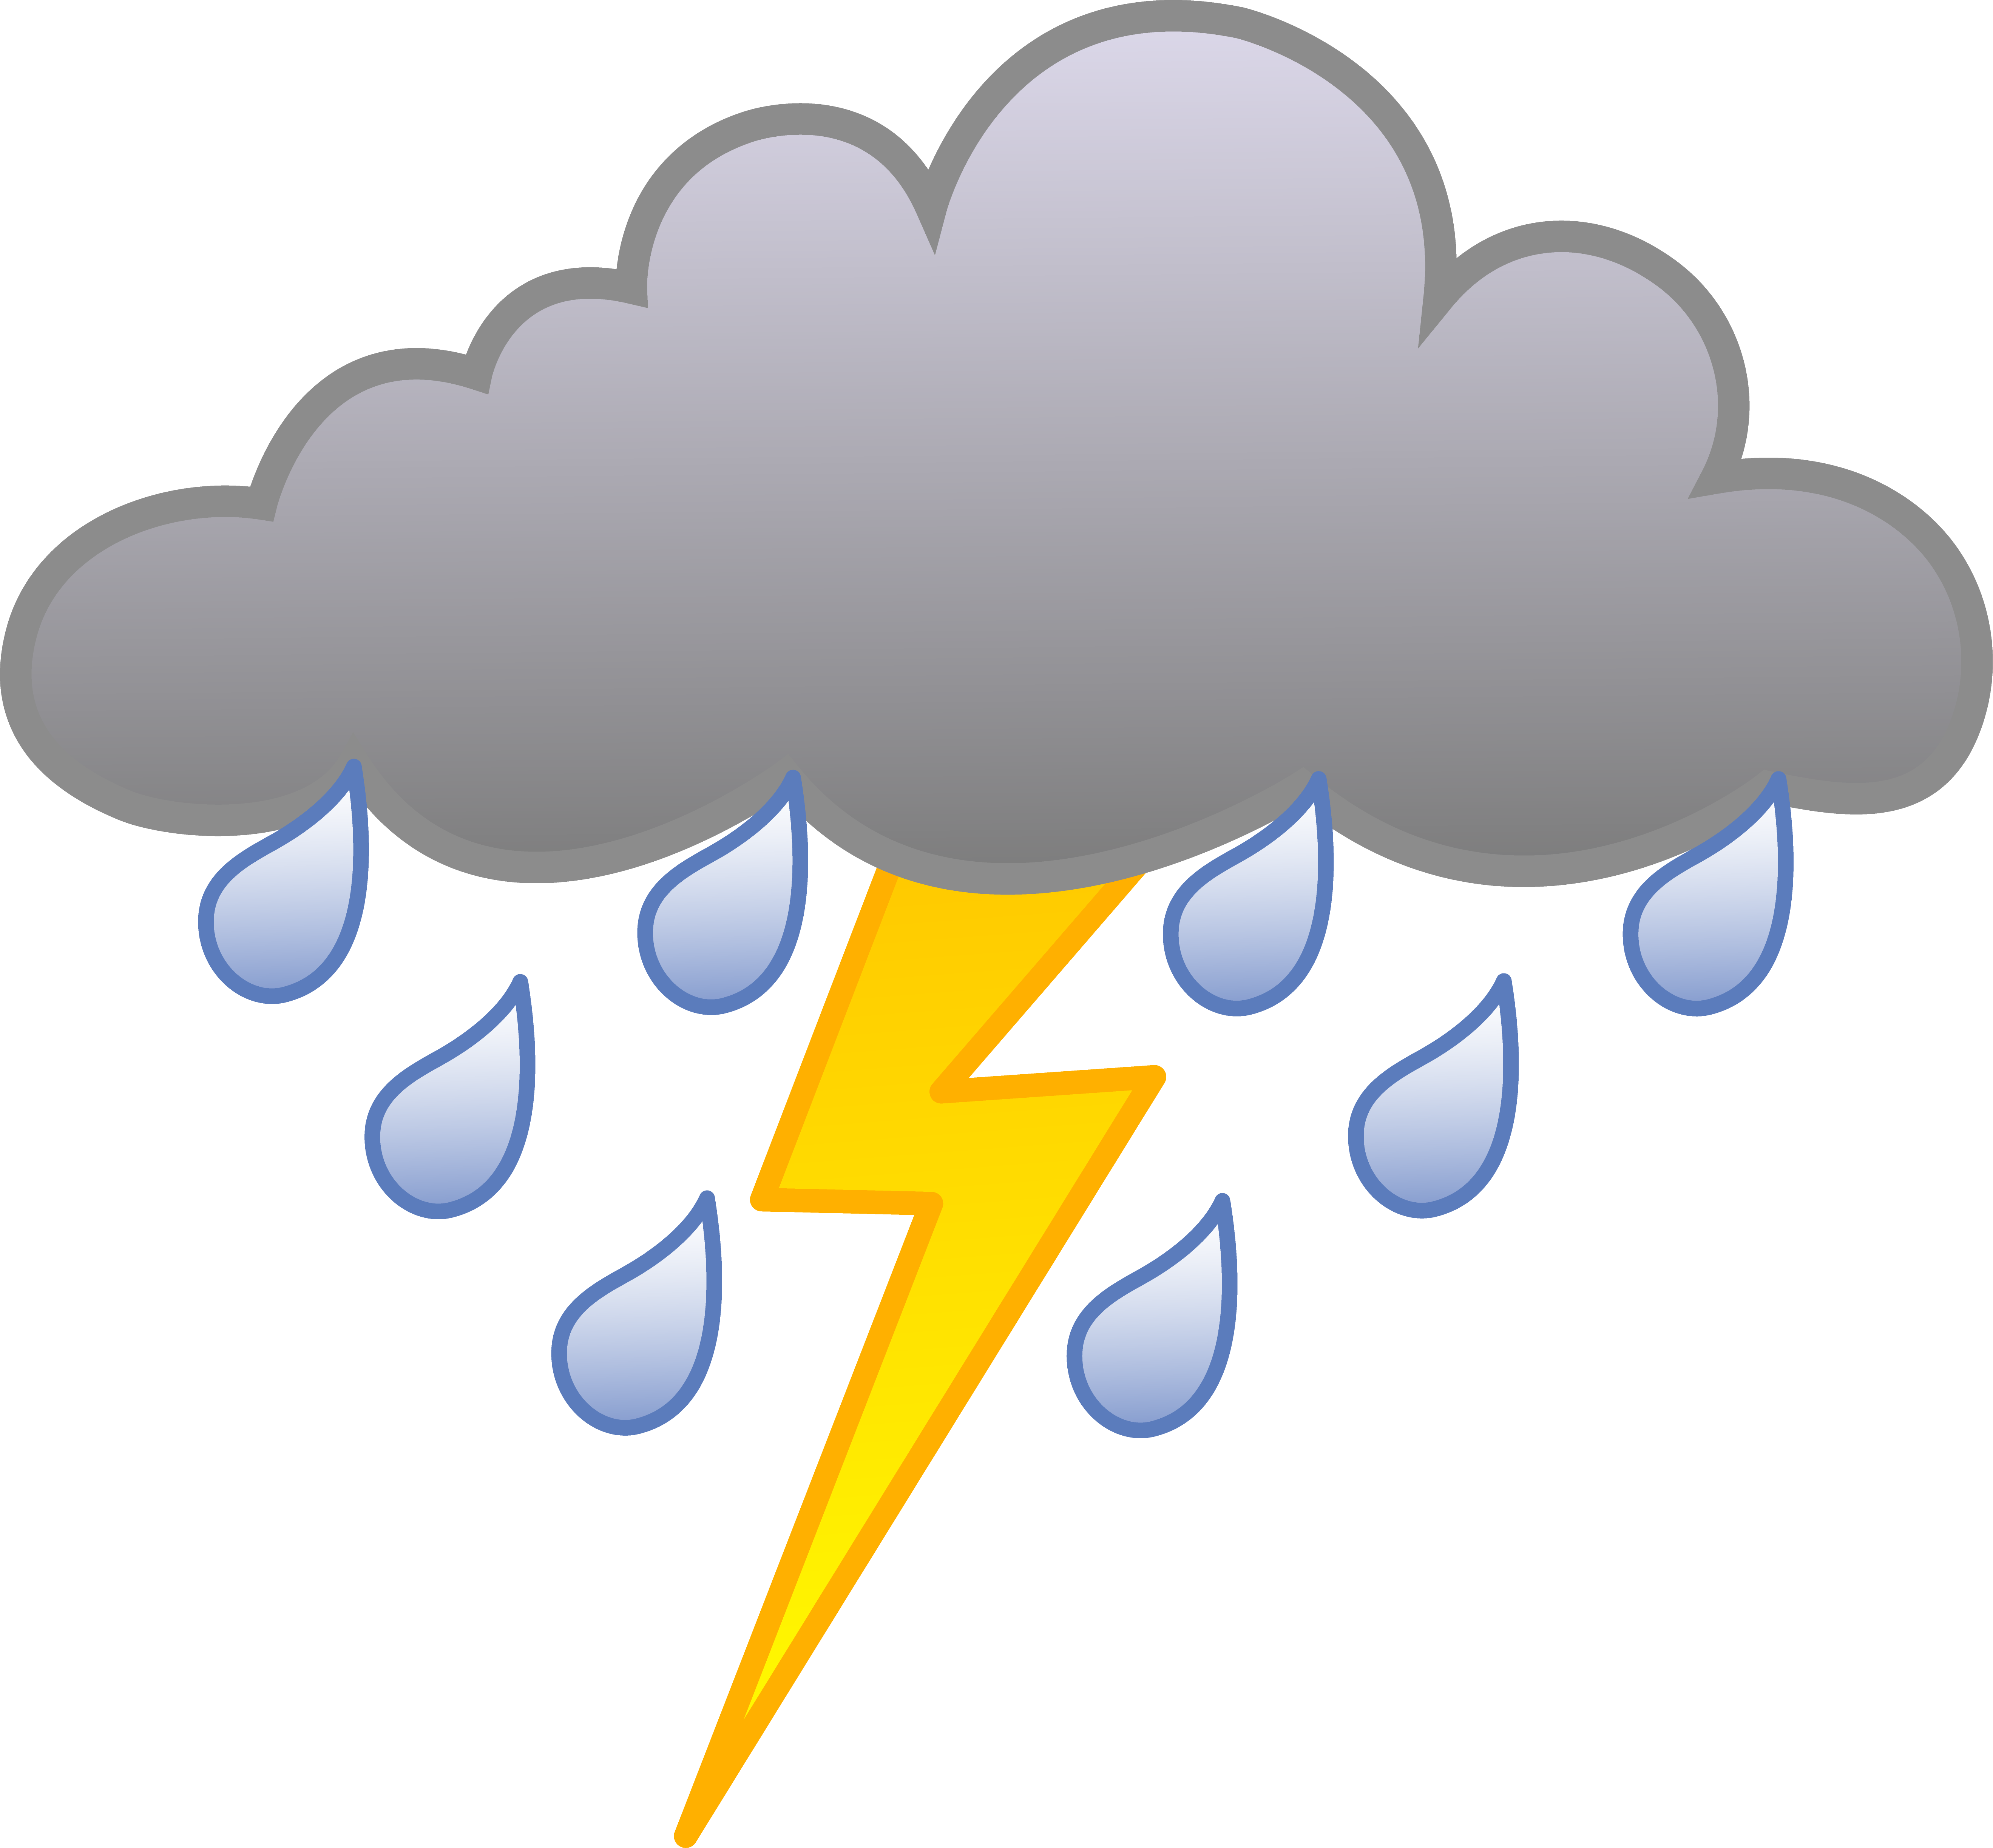 Stormy weather clipart 1 » Clipart Station.